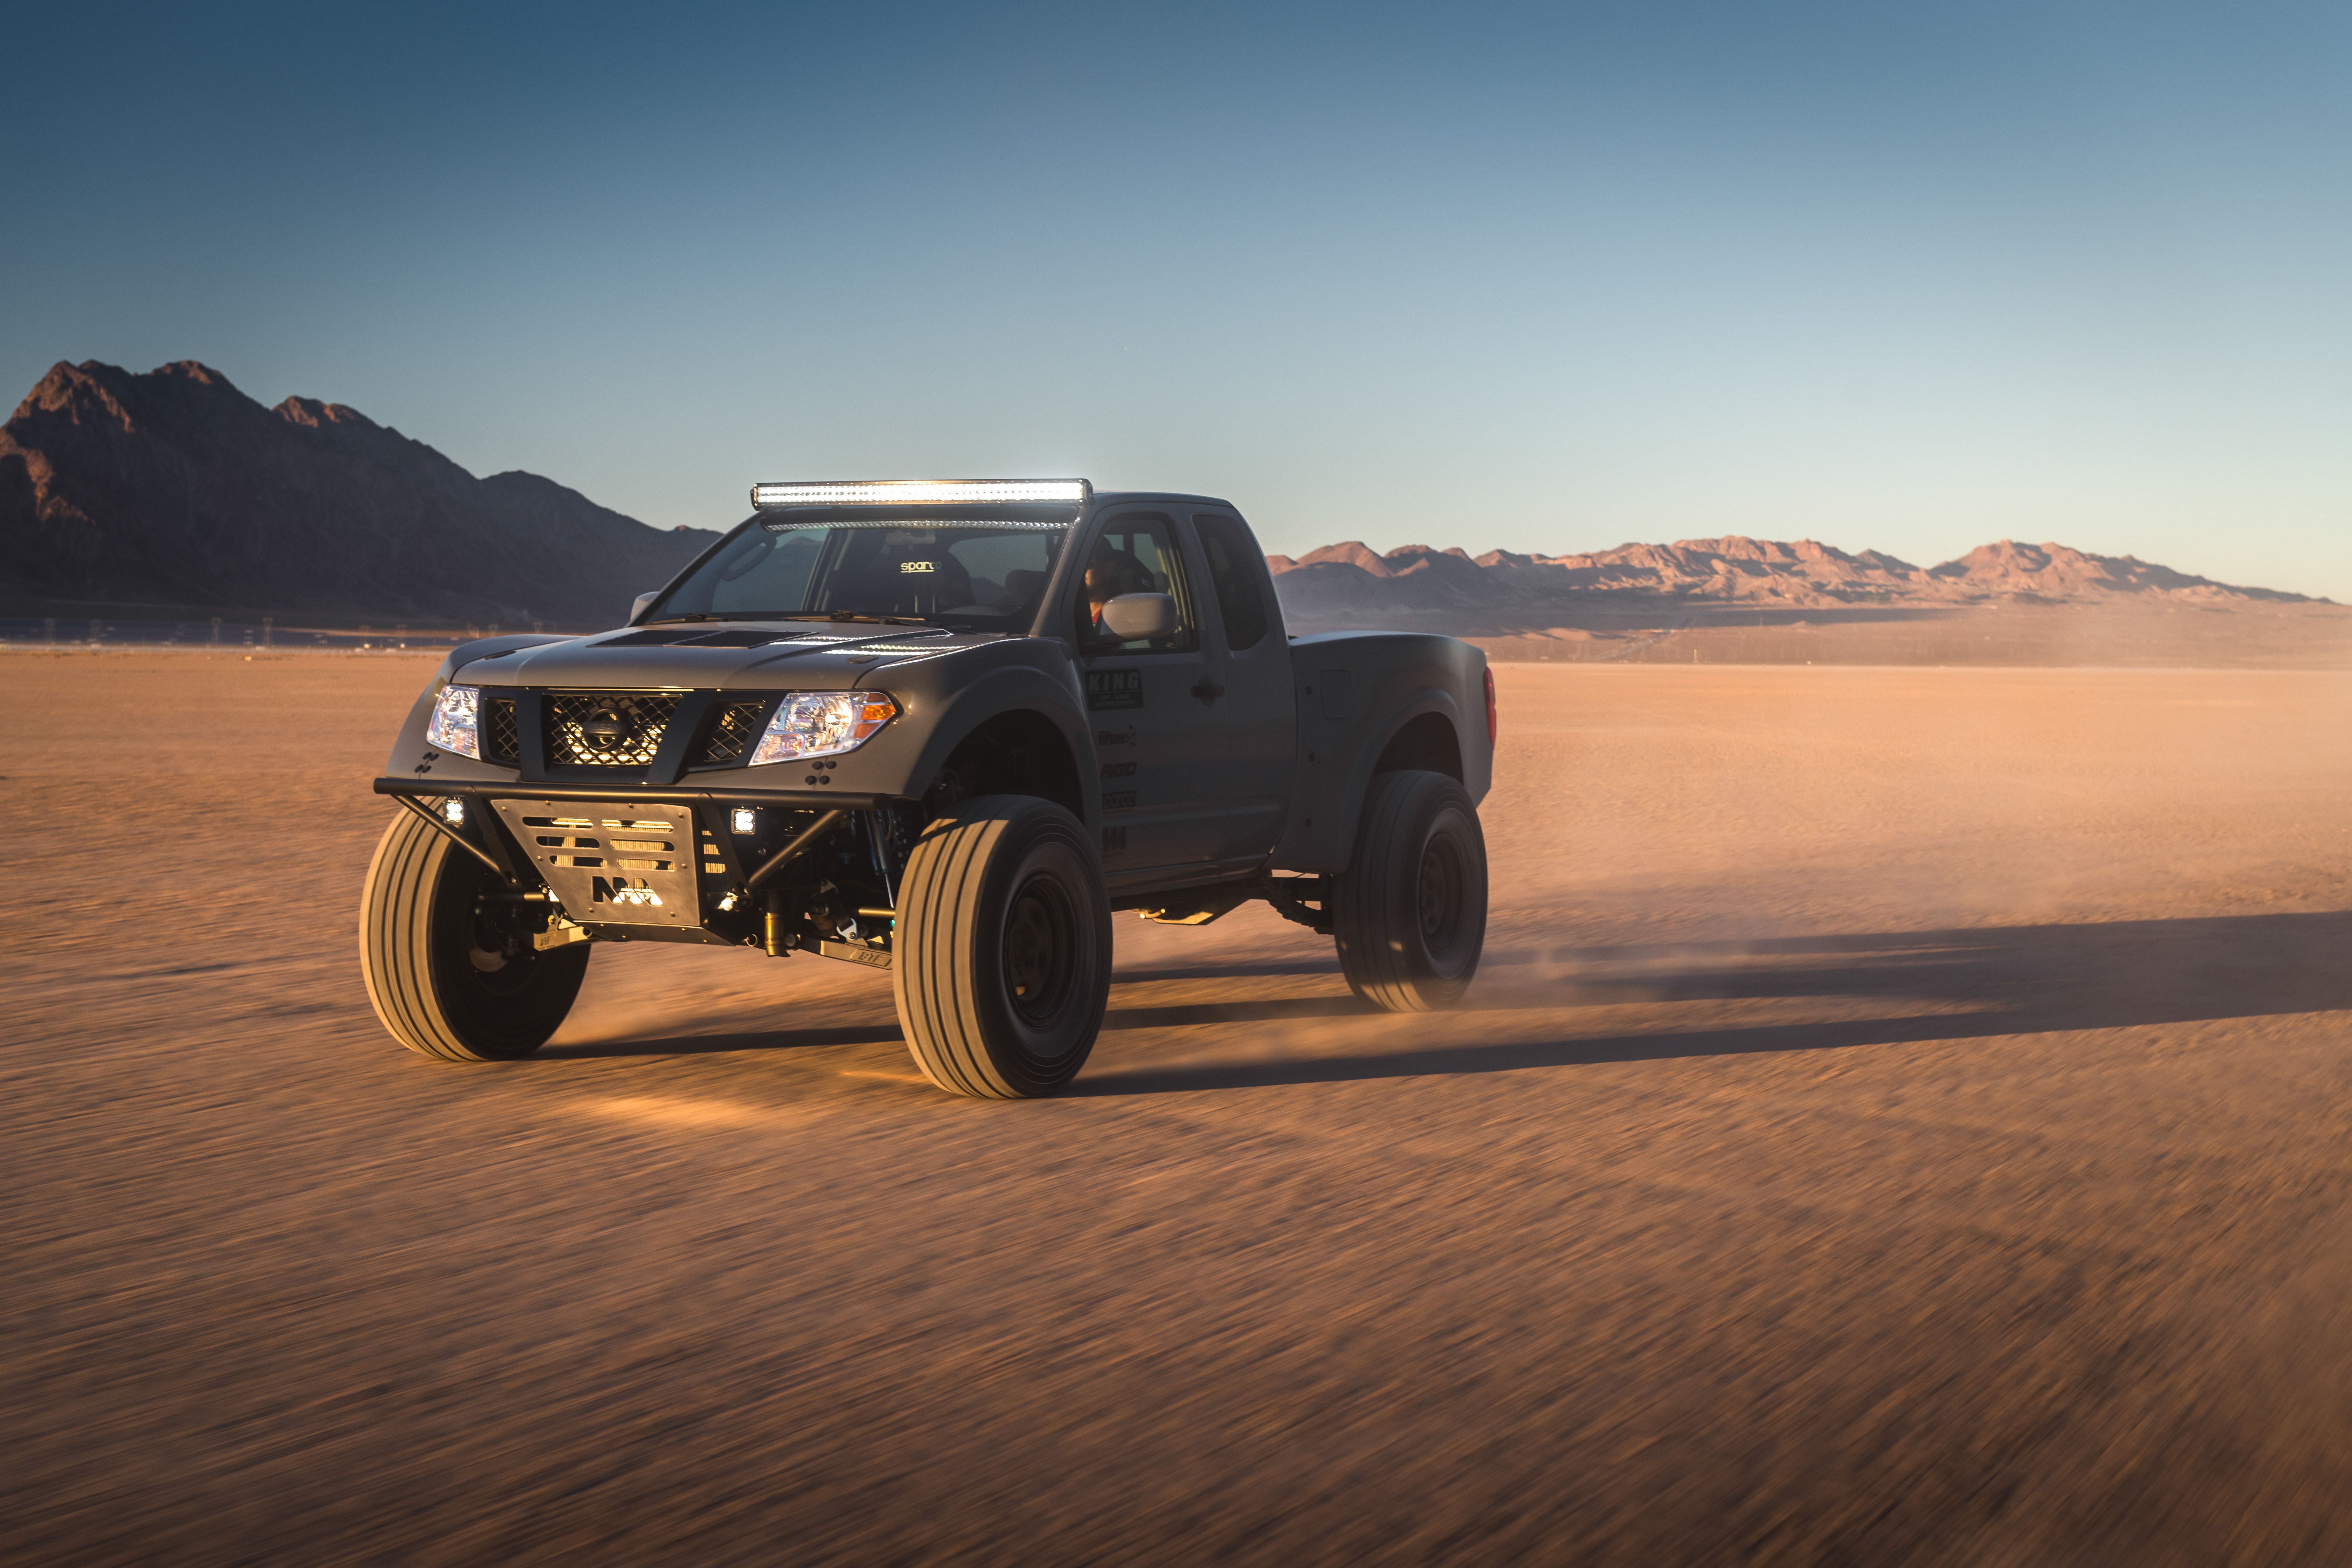 Nissan Frontier Desert Runner Has A 600 Hp V 8 With A Manual Transmission Nissan Nissan Frontier Manual Transmission